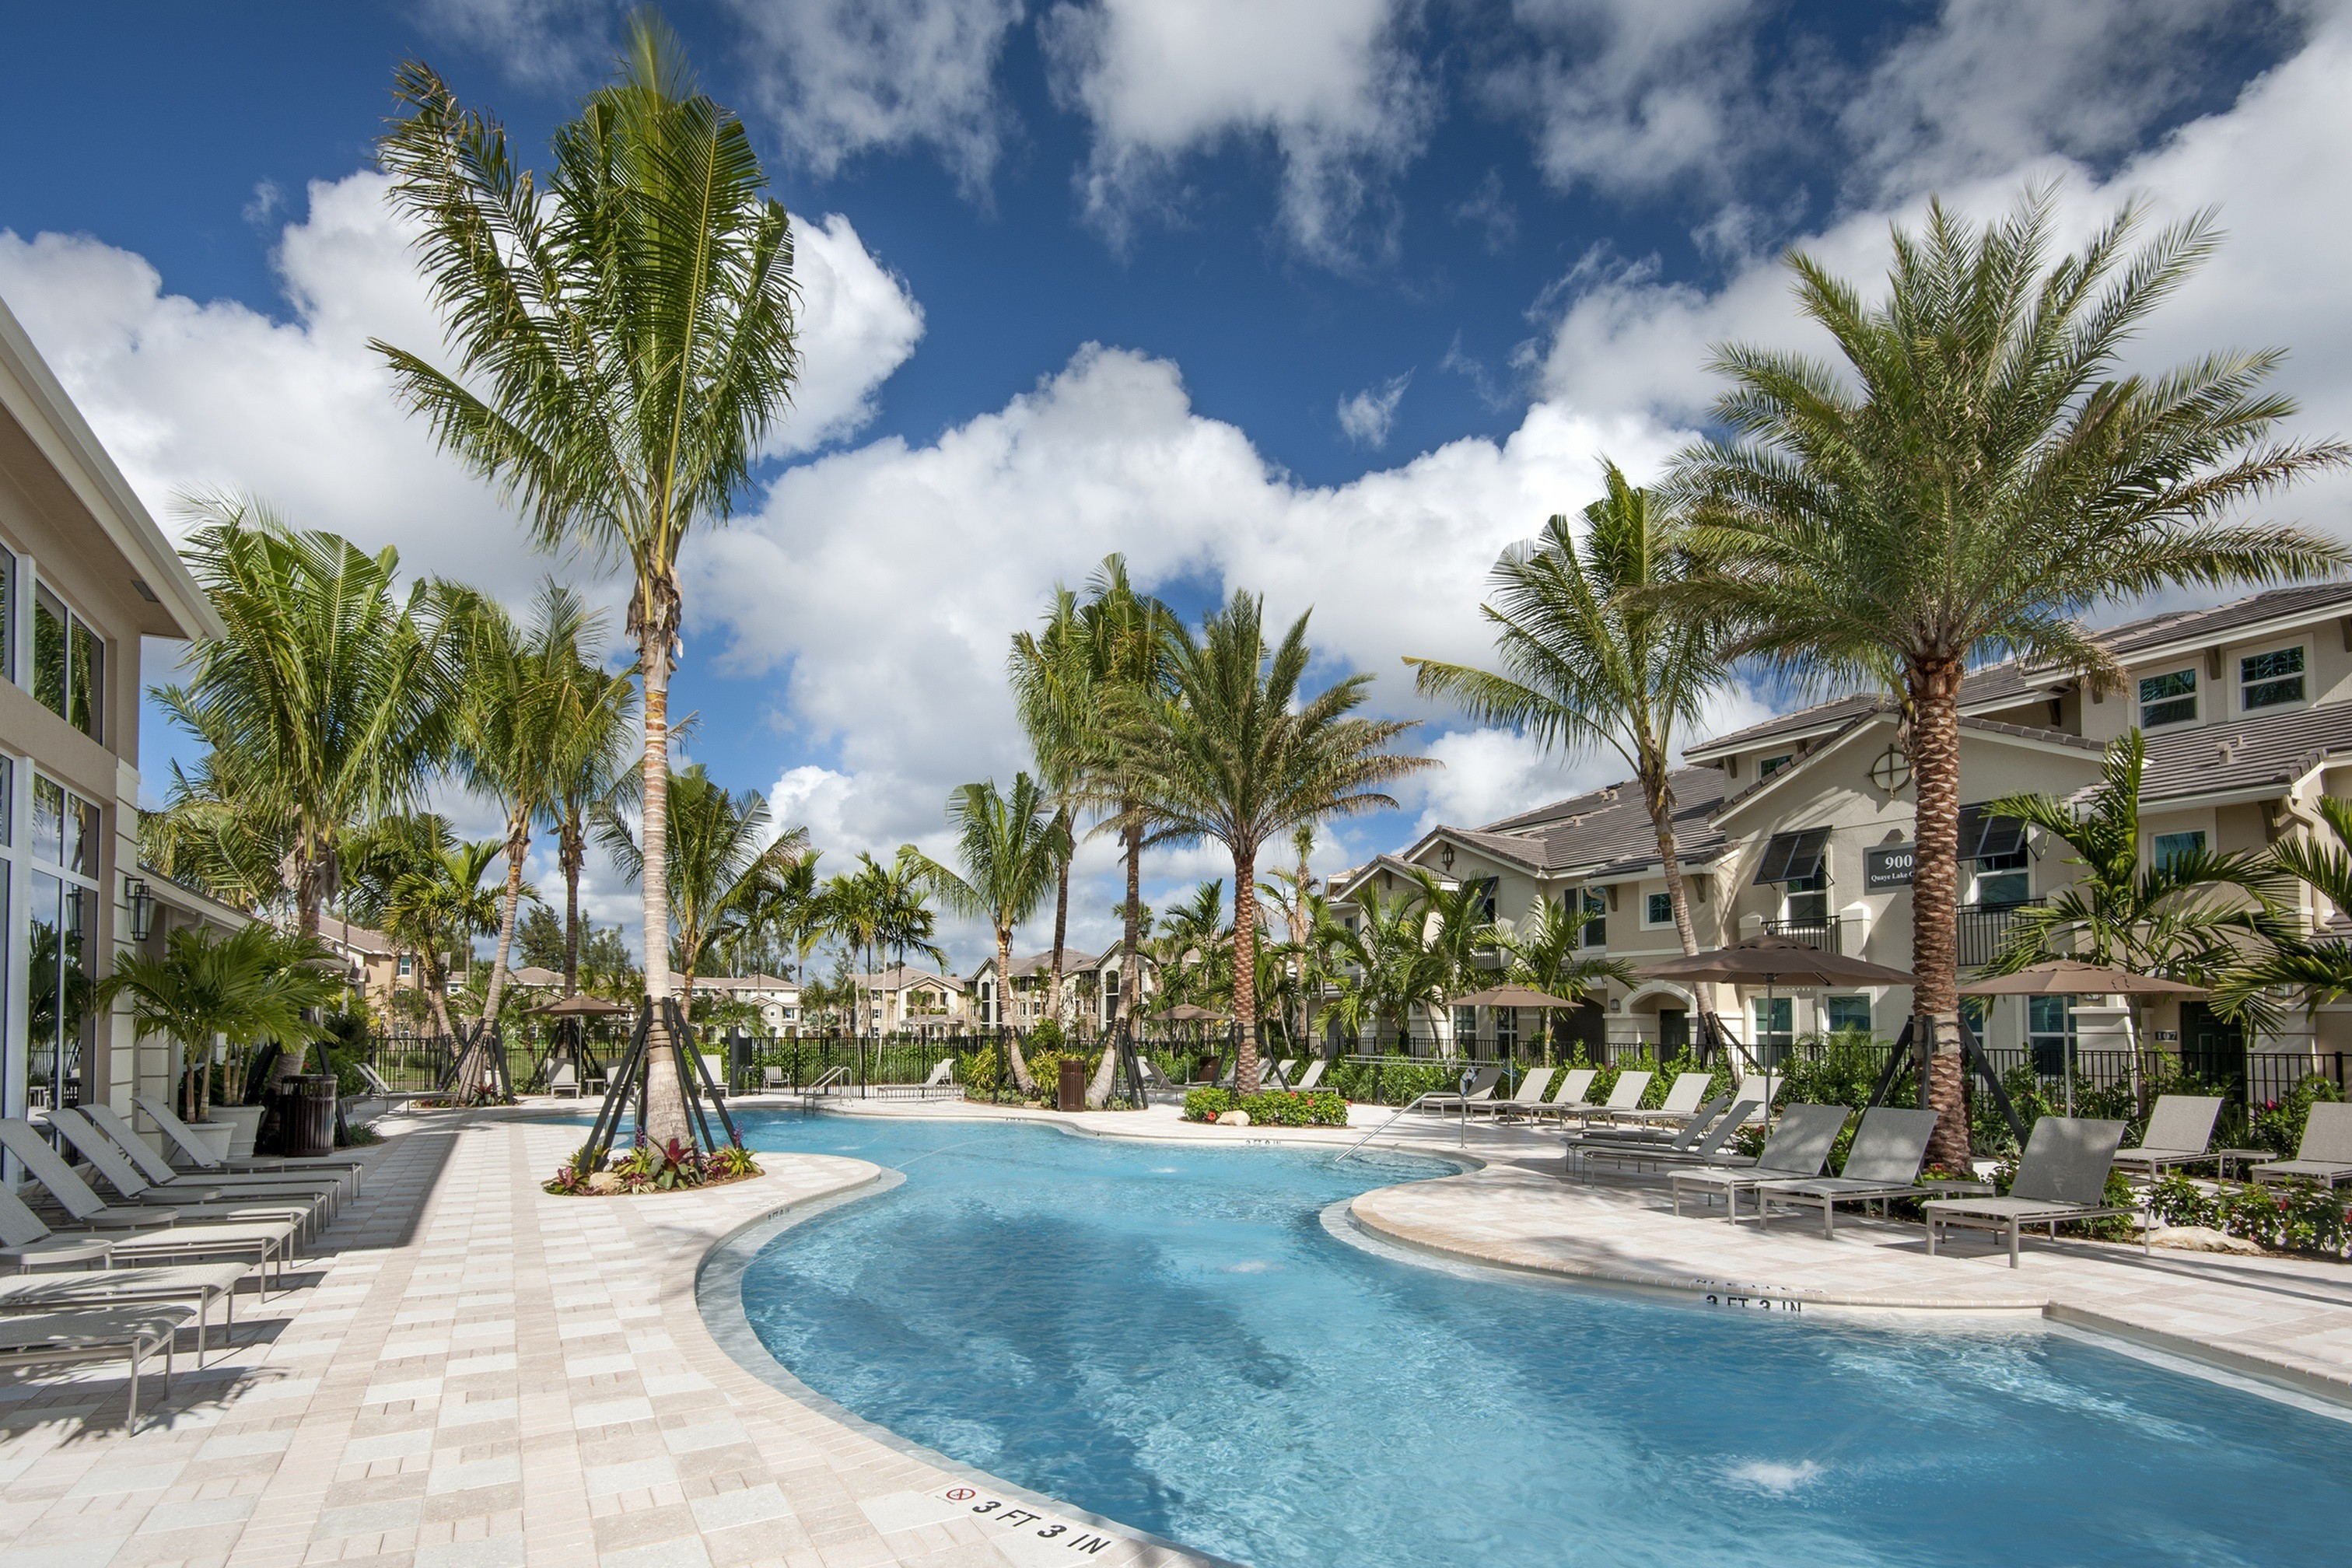 56 Apartments In West Palm Beach Fl Avail Now